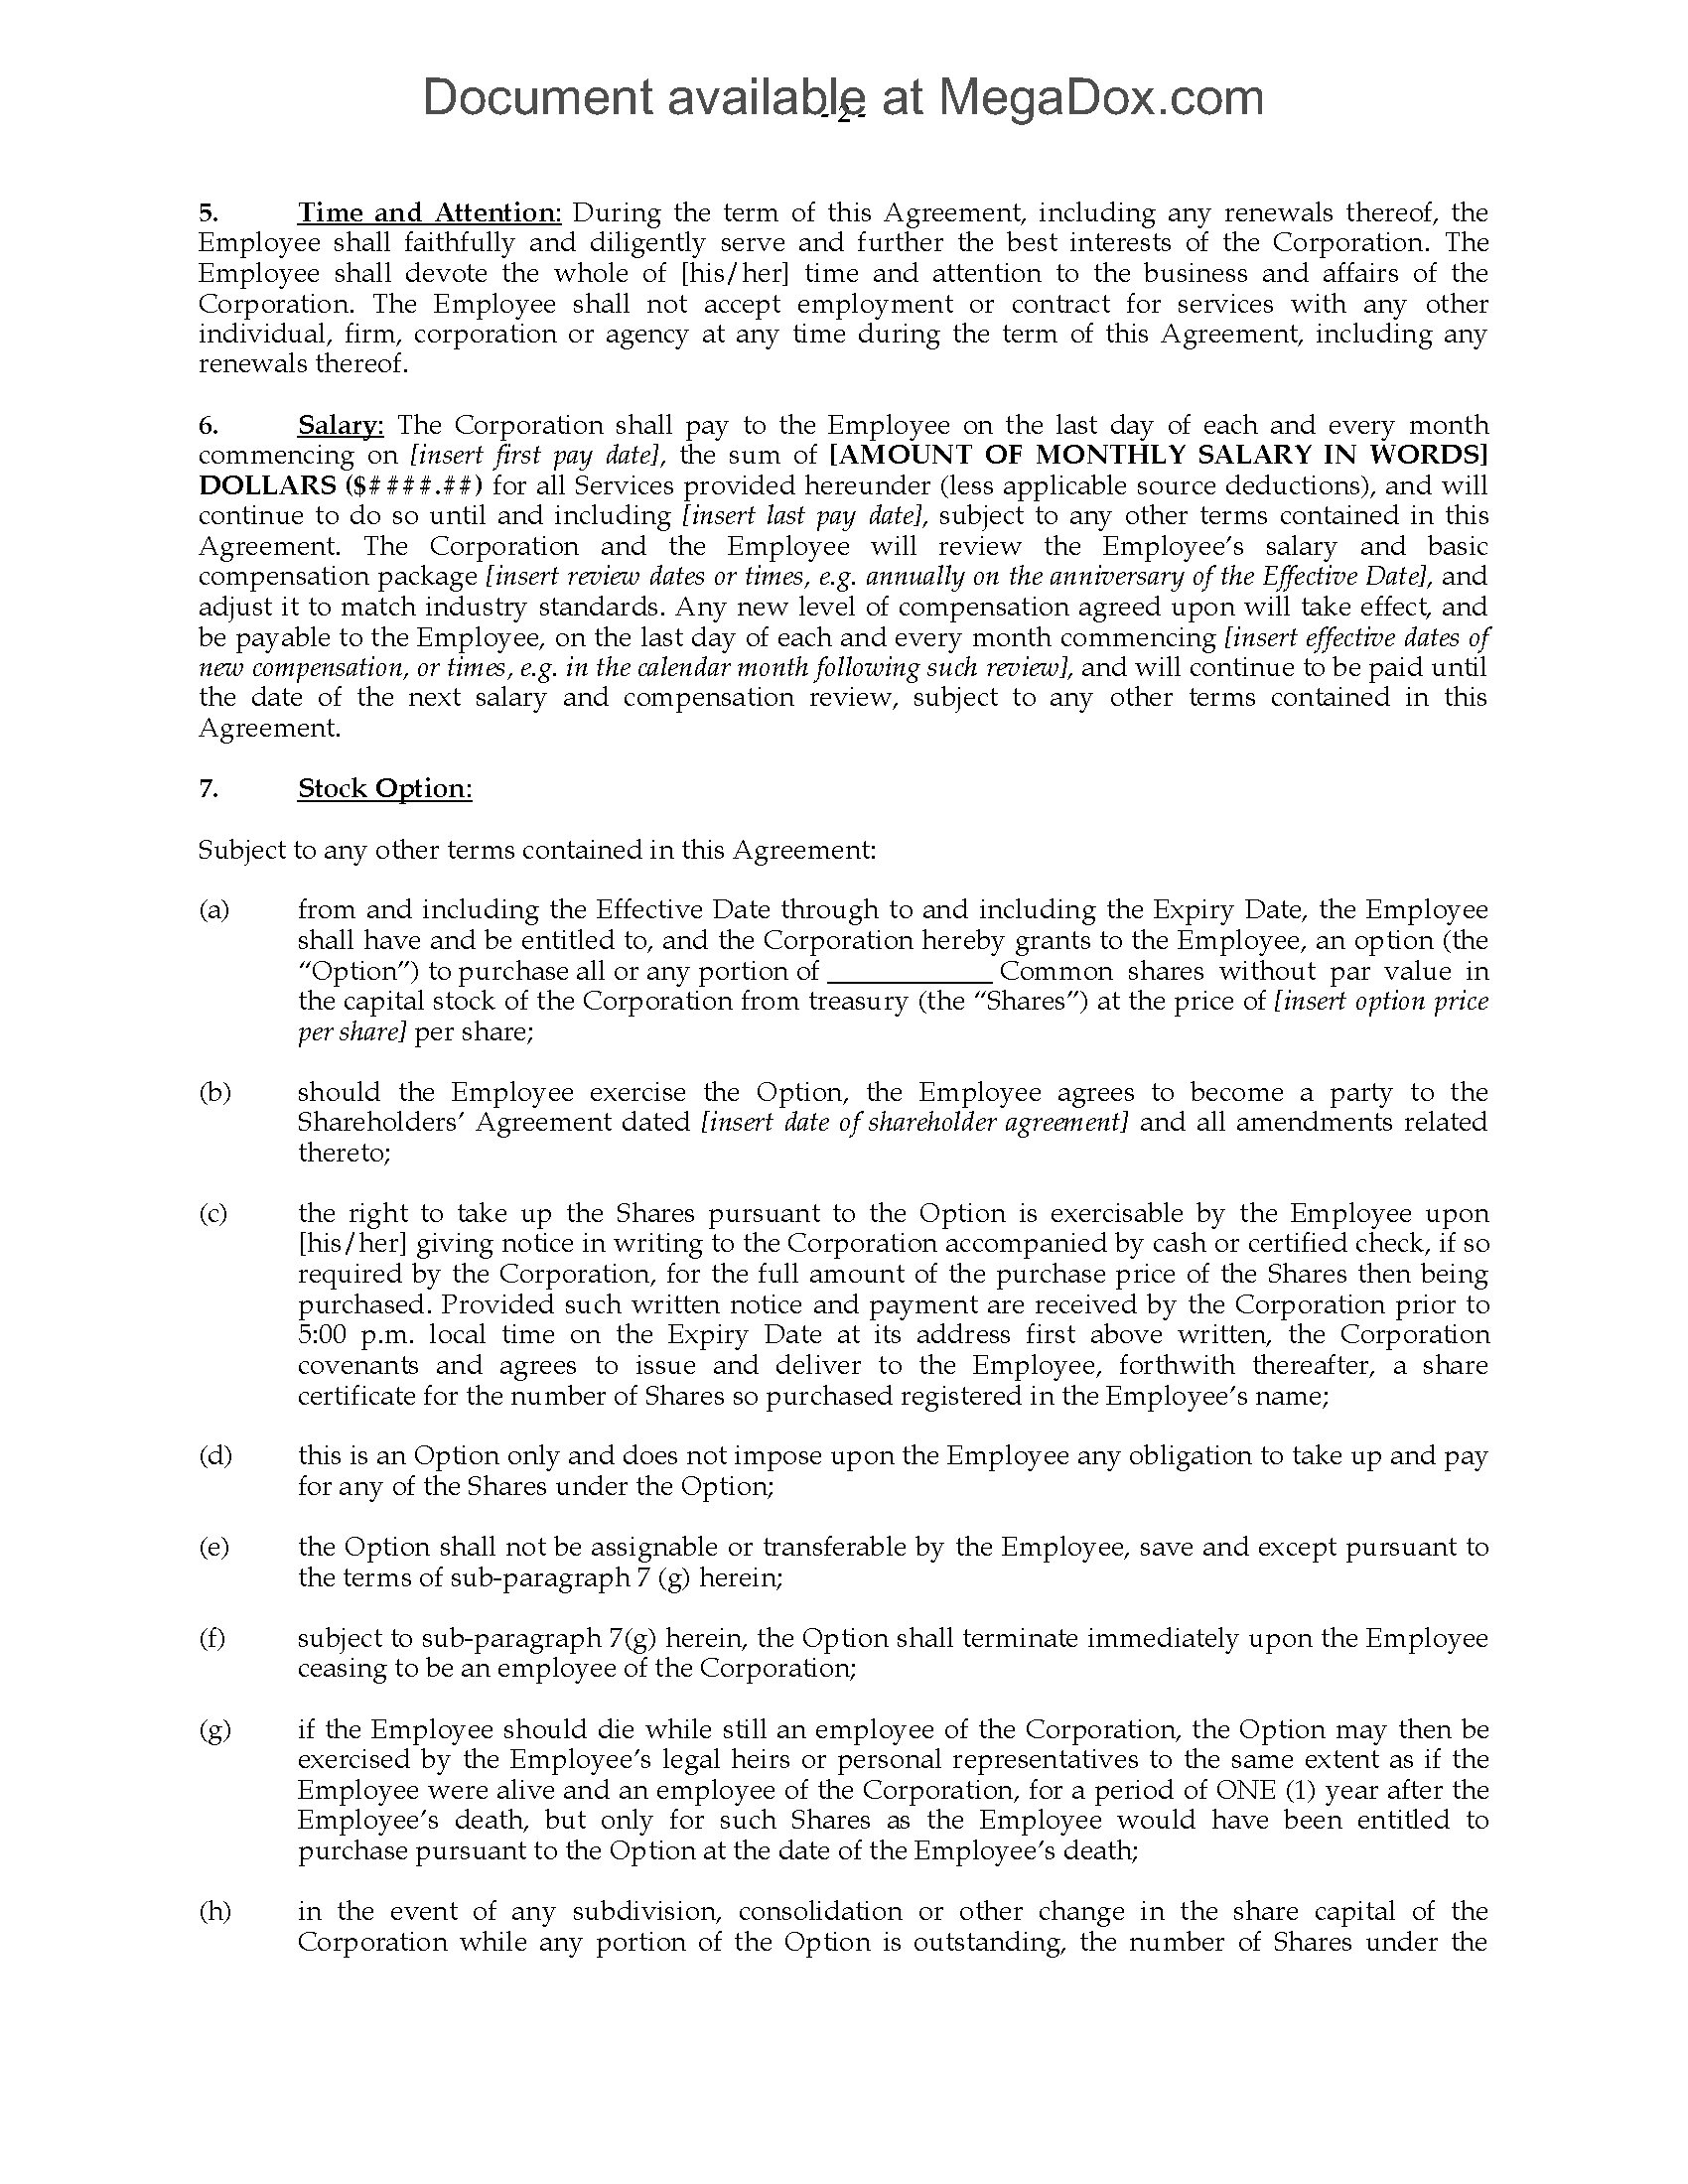 ontario employment agreement for ceo position